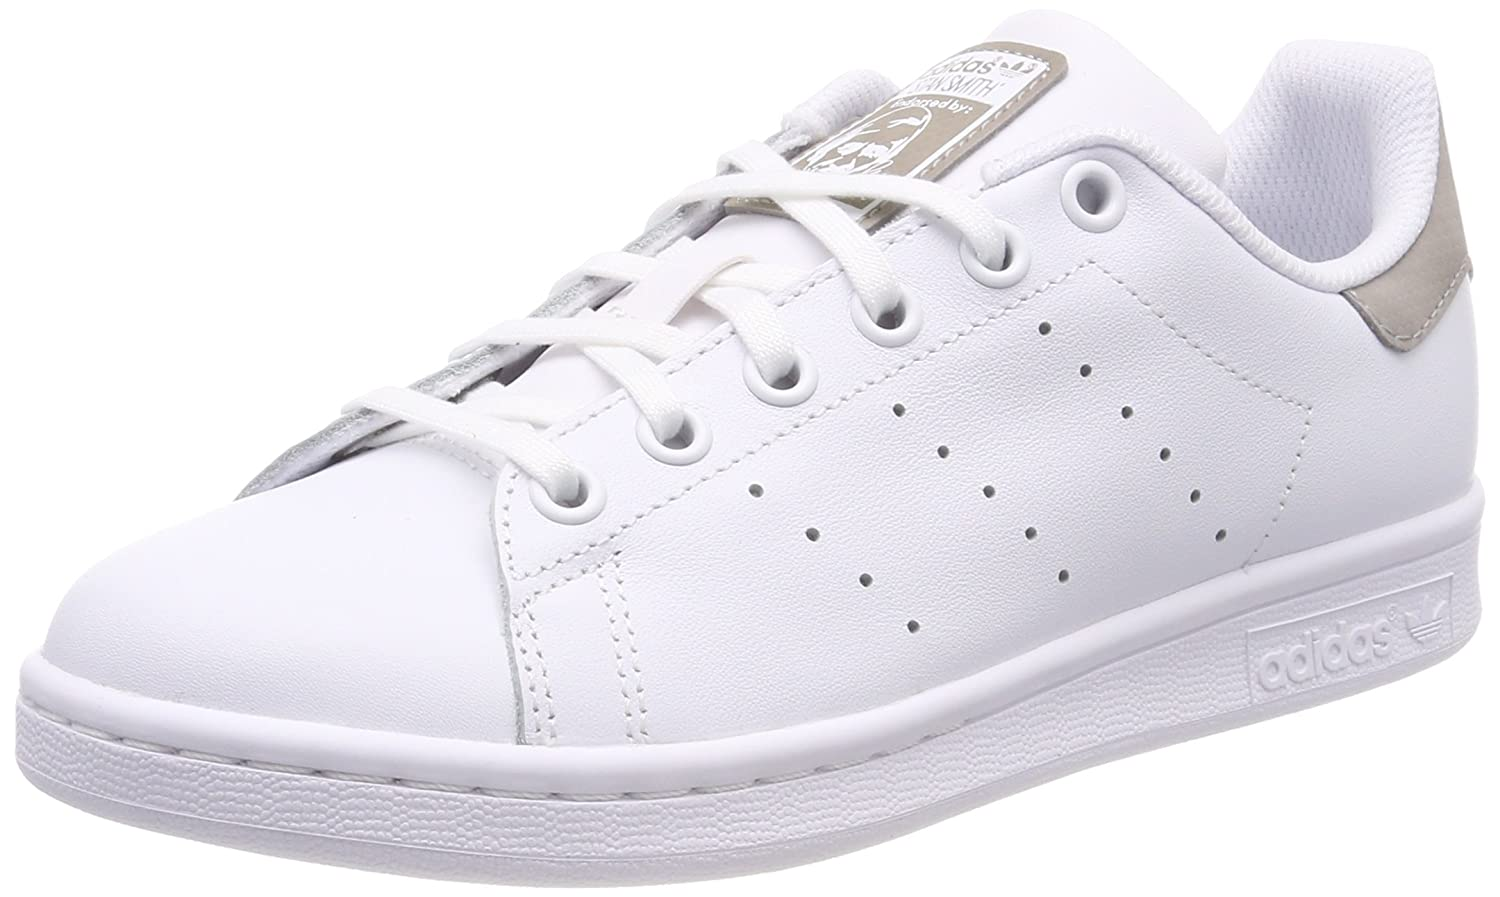 Adidas Stan Smith J, Chaussures de Gymnastique Mixte Enfant Baskets Mixte Enfant Blanc Footwear White 0 37 1/3 EU DB1200